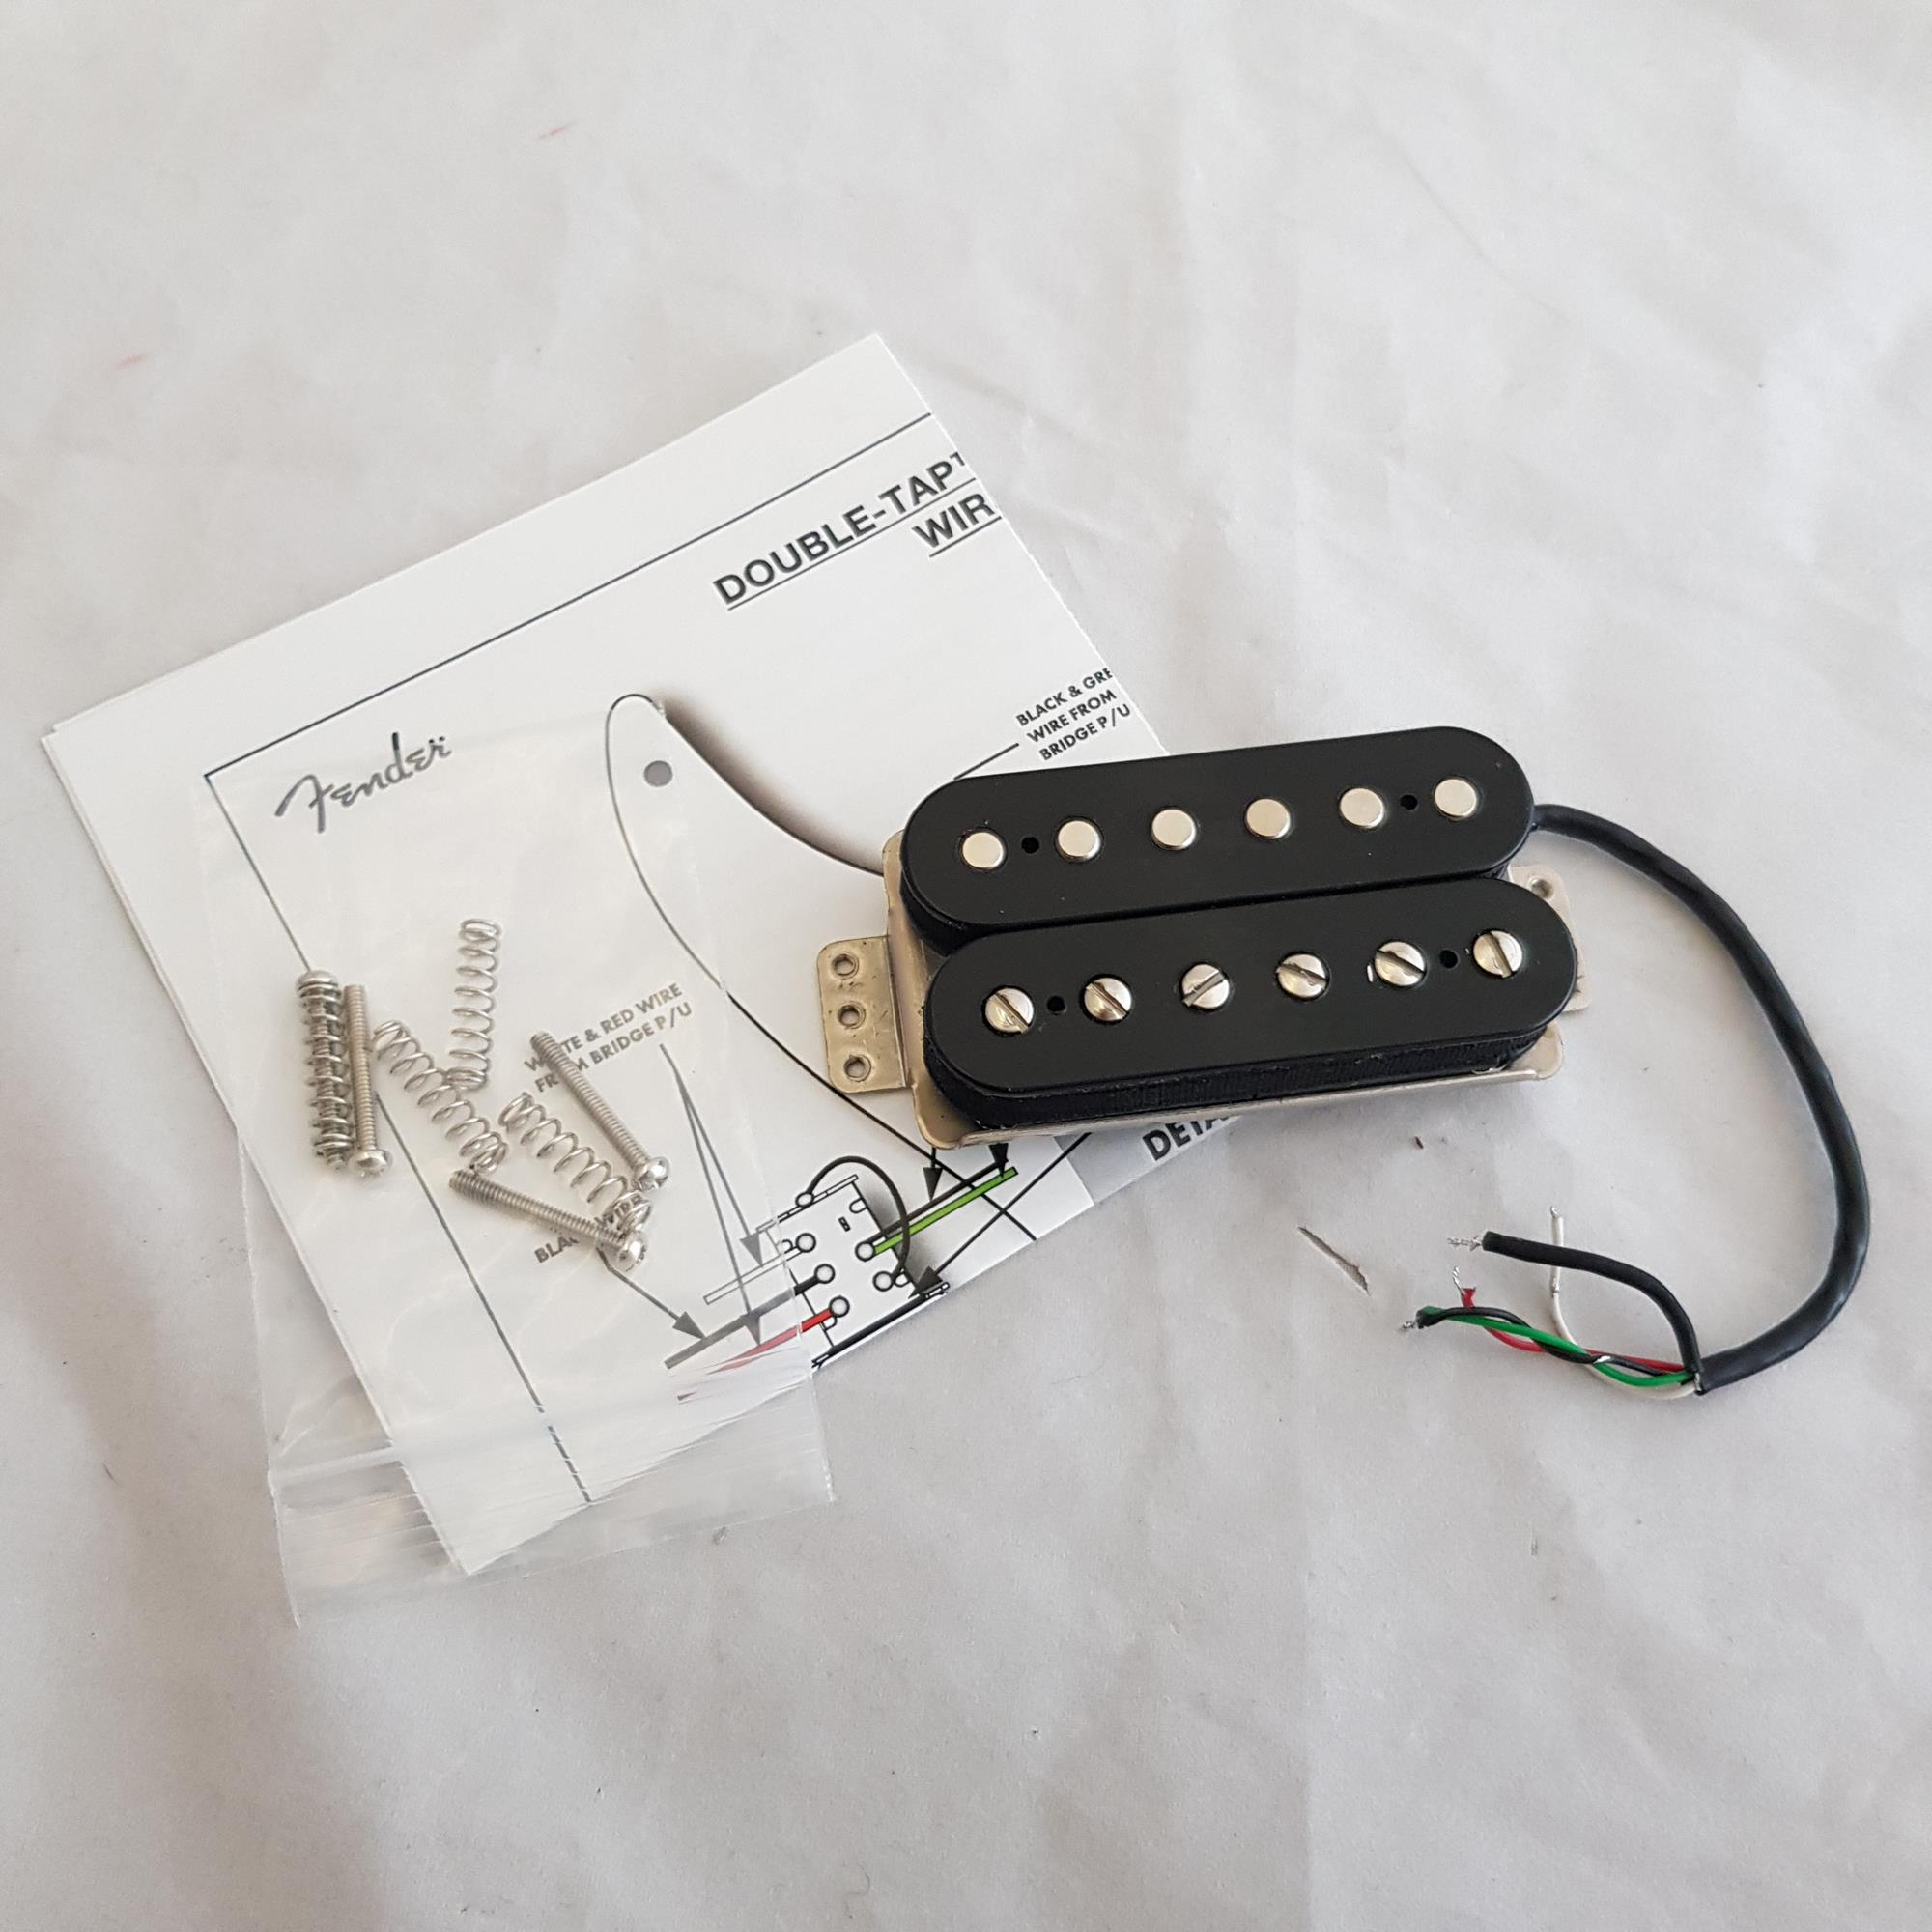 FENDER-DOUBLE-TAP-HUMBUCKER-sku-1616251010518